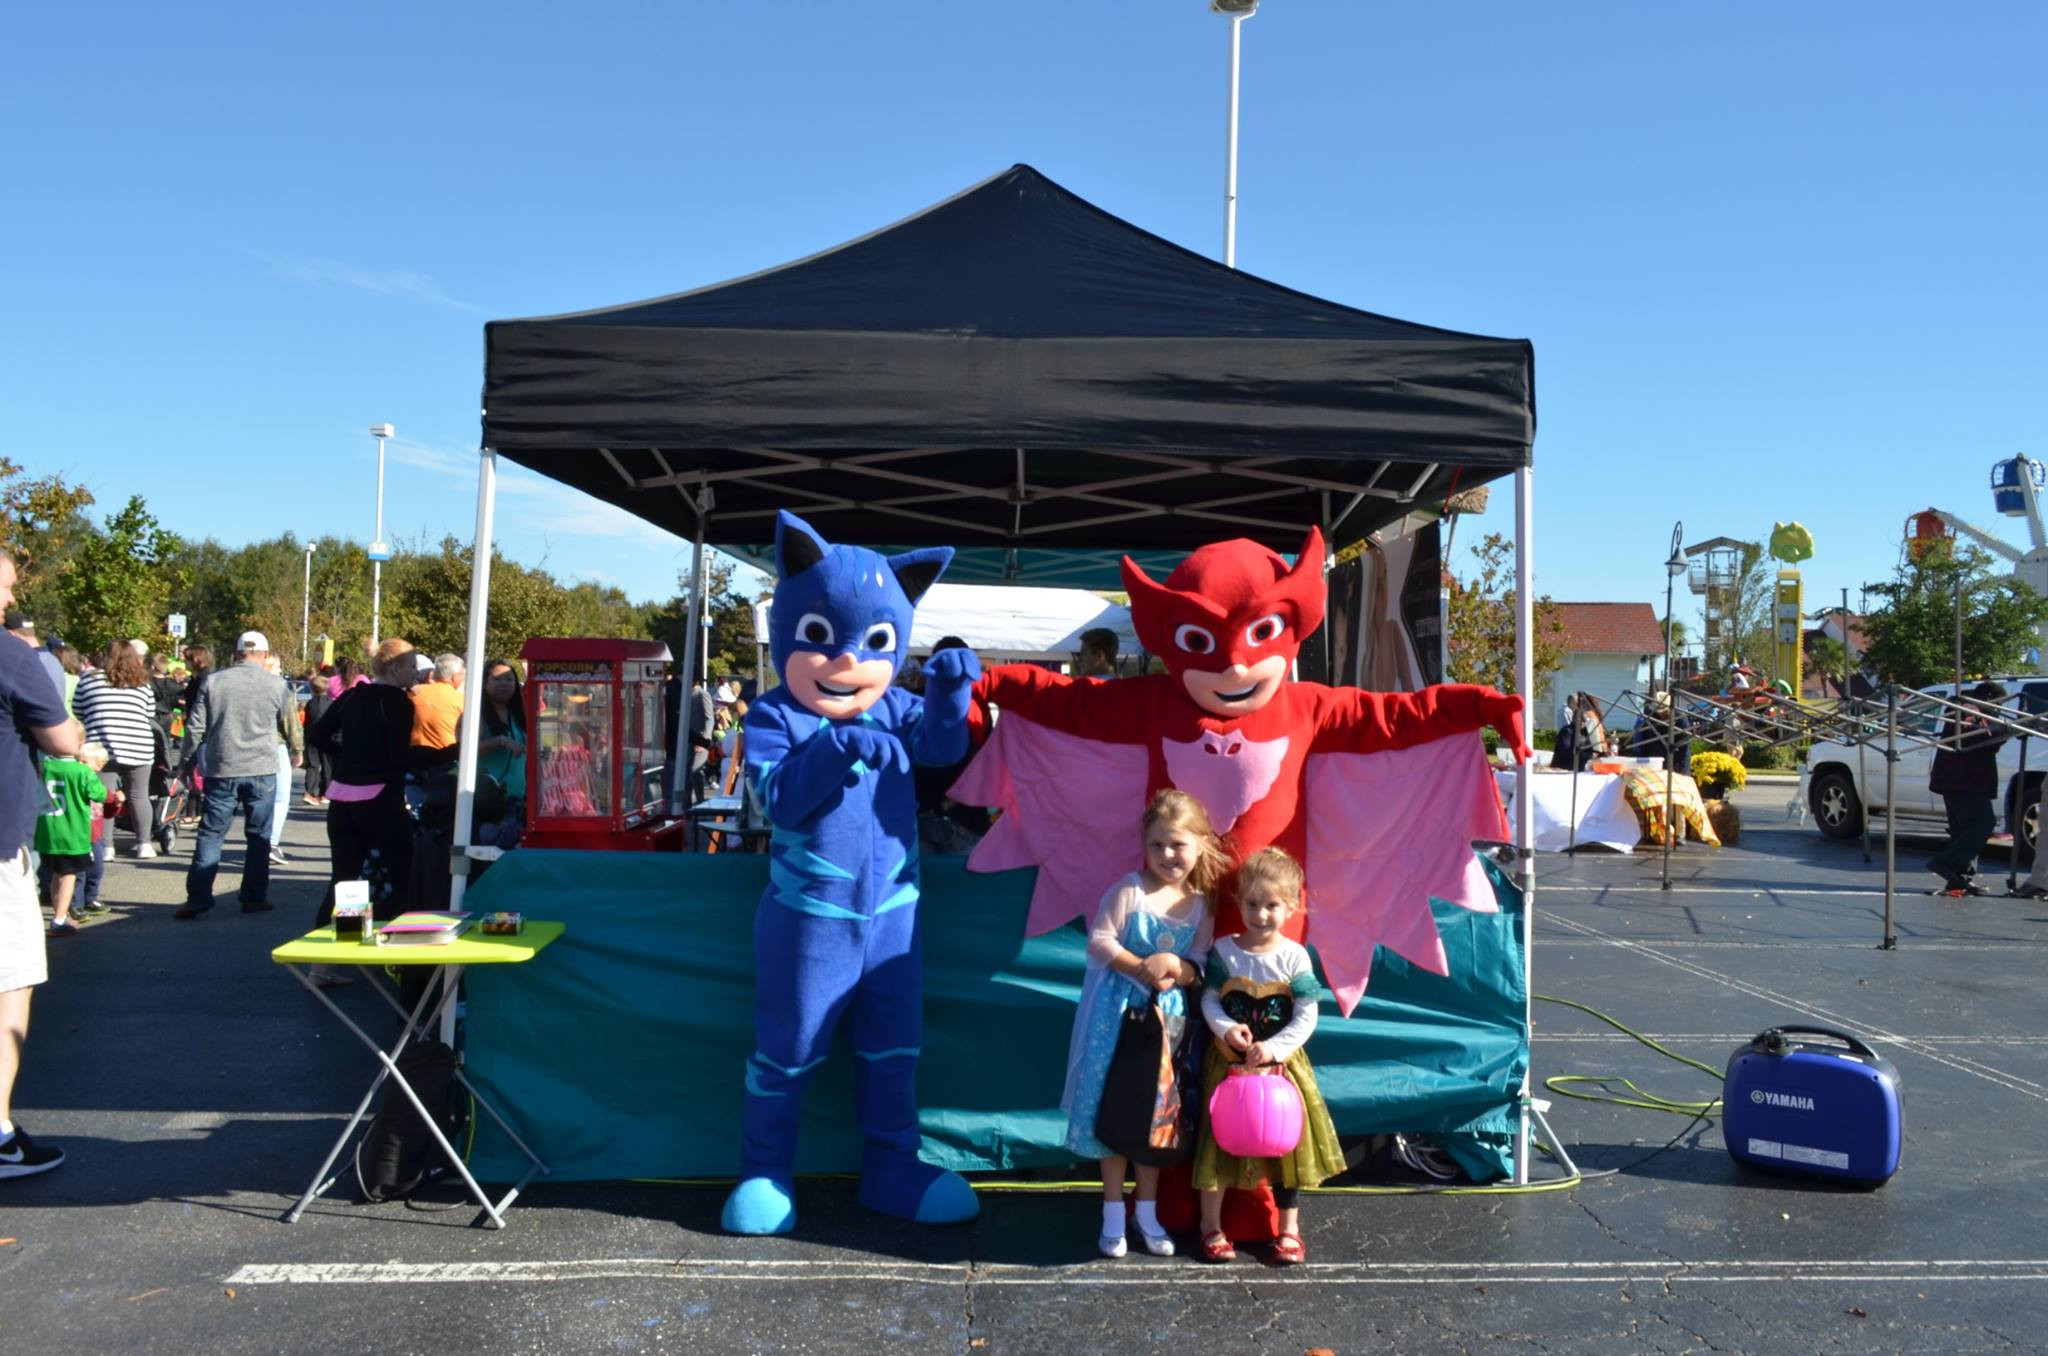 PJ MASKS Character Performers